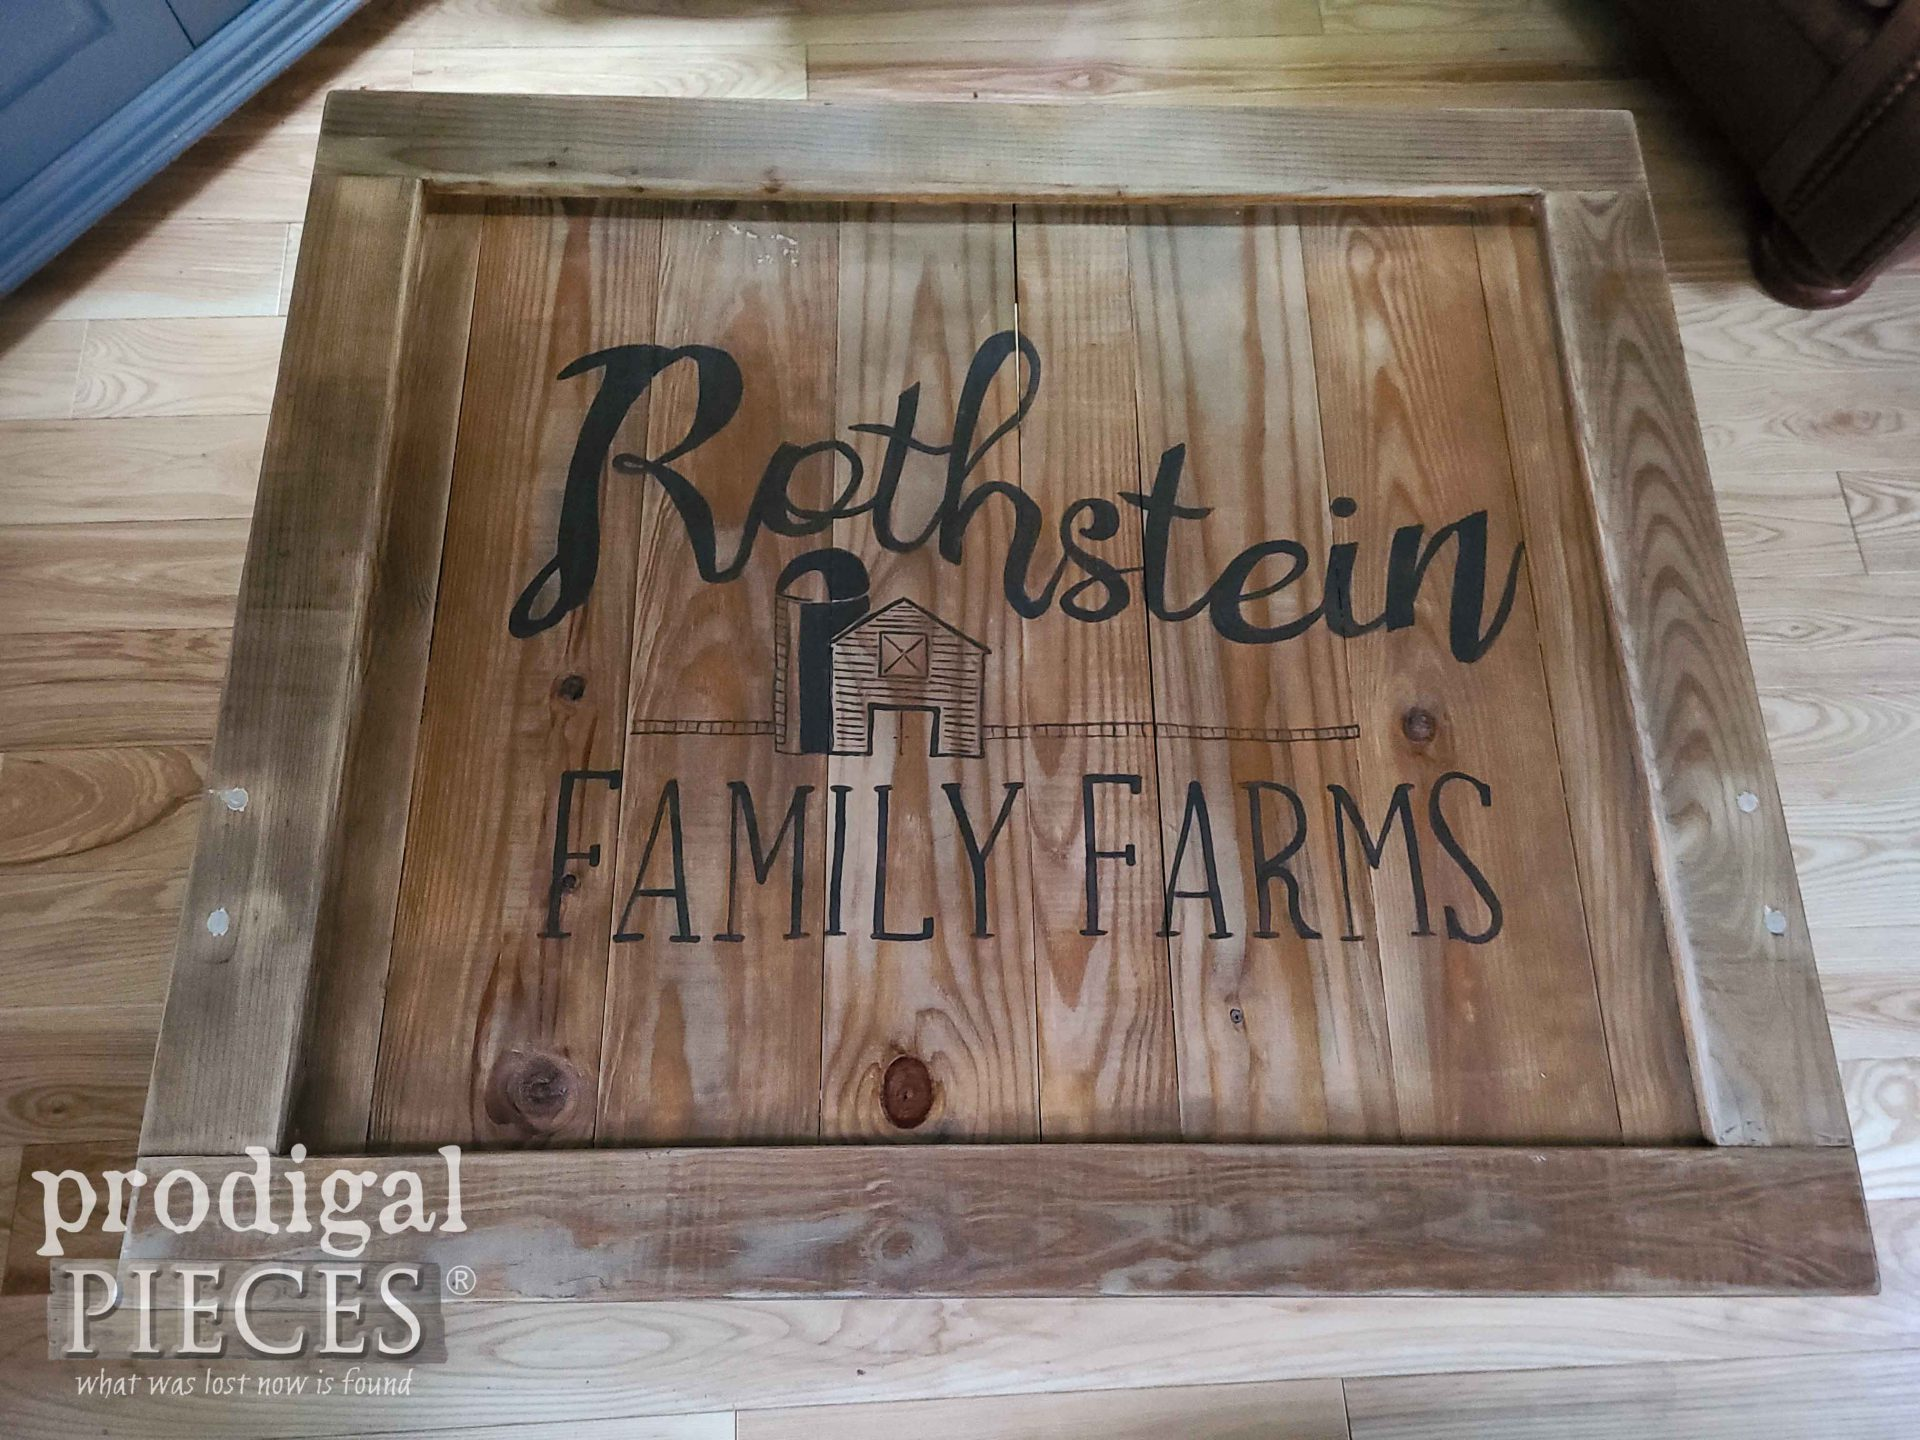 Rothstein Family Farms Typography Coffee Table by Larissa of Prodigal Pieces   prodigalpieces.com #prodigalpieces #diy #home #homedecor #farmhouse #furniture